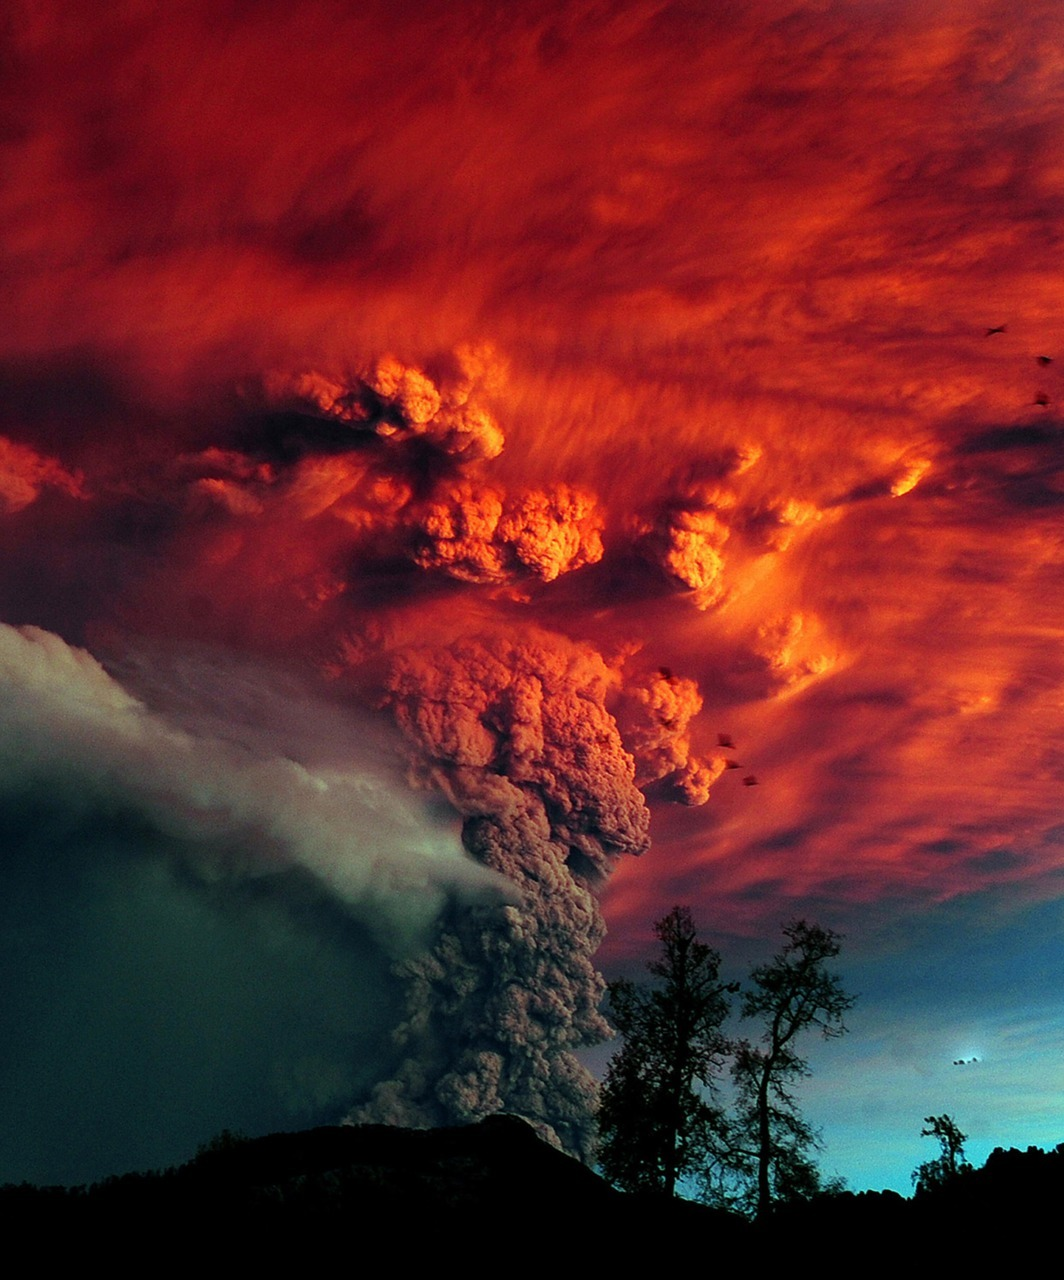 In case you missed it, the shots of the ash plume above the Puyehue-Cordon Caulle volcano chain near Entrelagos, Chile are awesome! We have more photos here.